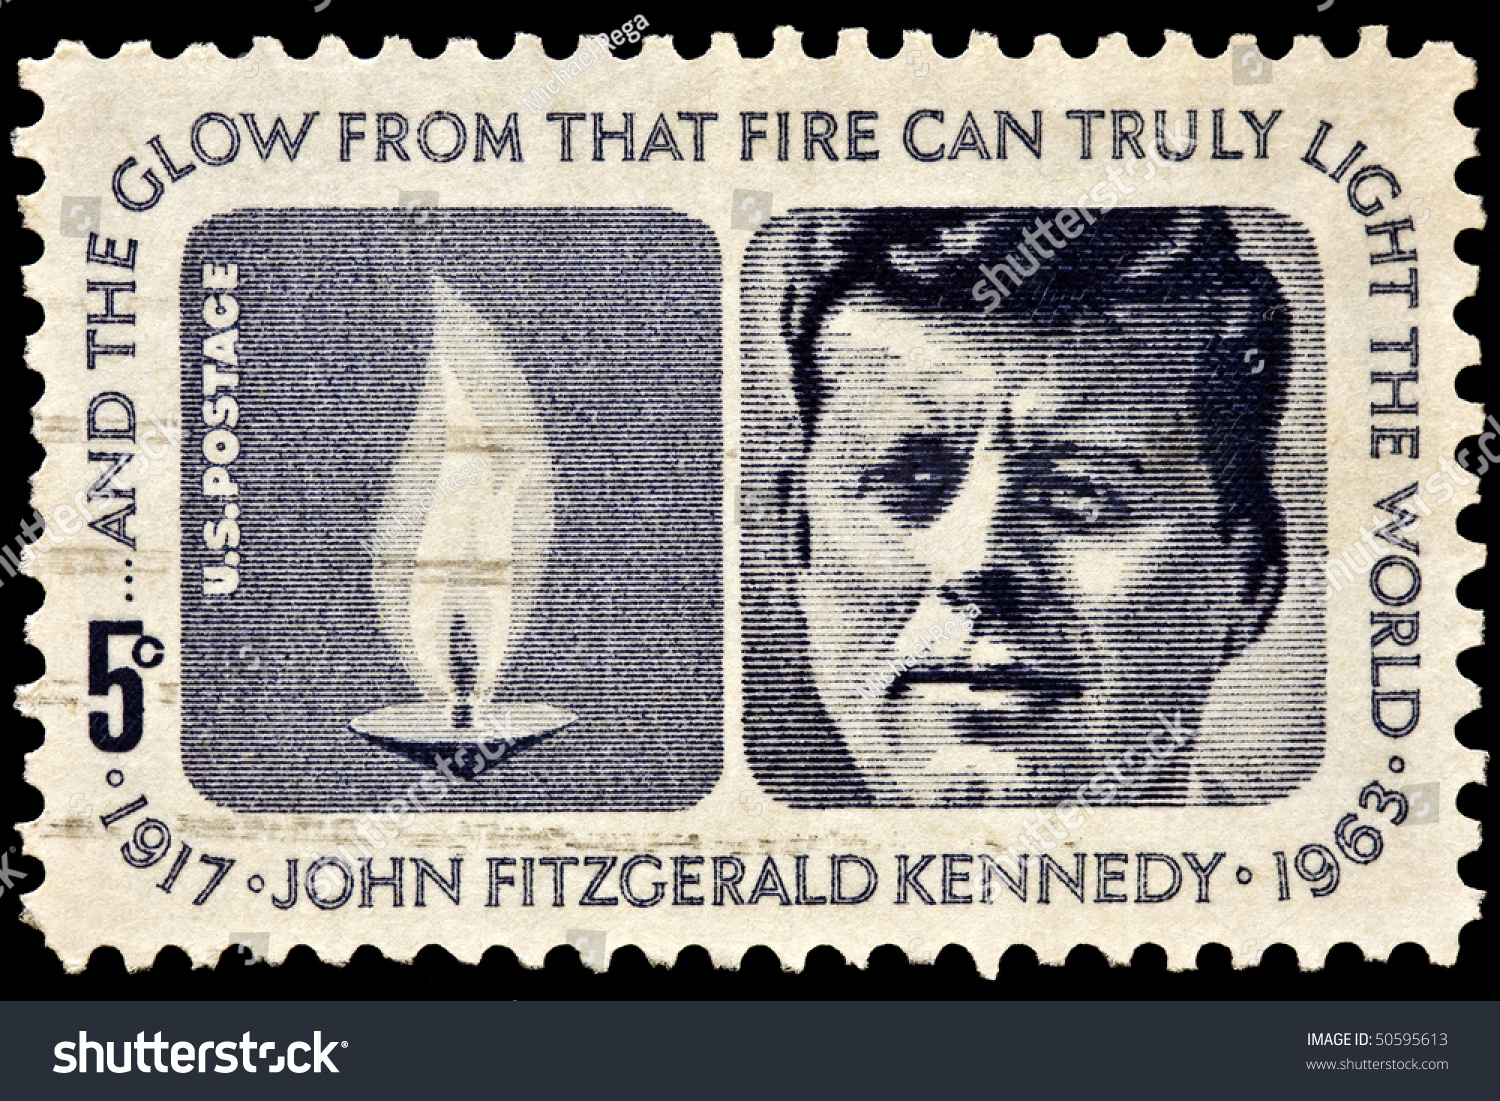 an image portrait of john f kennedy in the united states Find john f kennedy stock images in hd and millions of other royalty-free stock   2,035 john f kennedy stock photos, vectors, and illustrations are available.